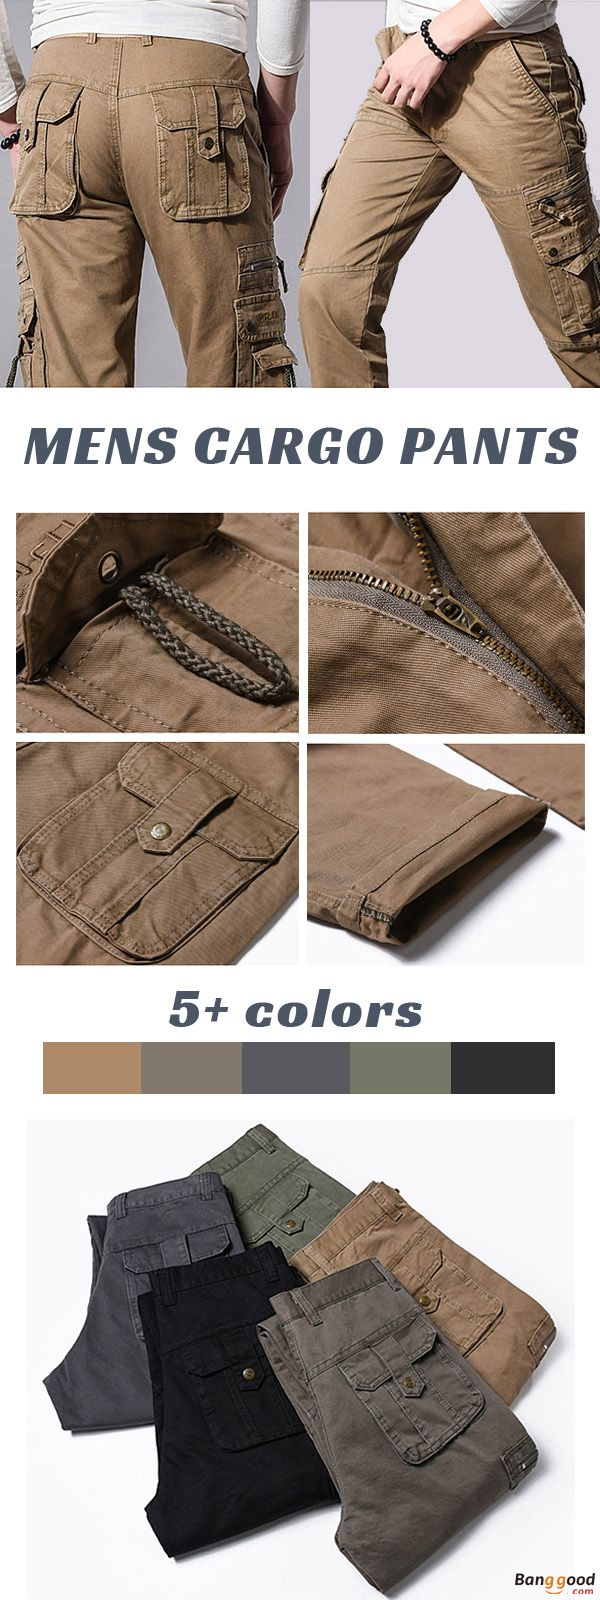 US$39.91 + Free Shipping. Mens Casual Outdoor Cargo Pants Military Multi-pocket Cotton Long Pants. Material: 100%Cotton. Color: Army Green, Army Gray, Black, Dark Gray, Khaki. >>> To View Further, Visit Now.